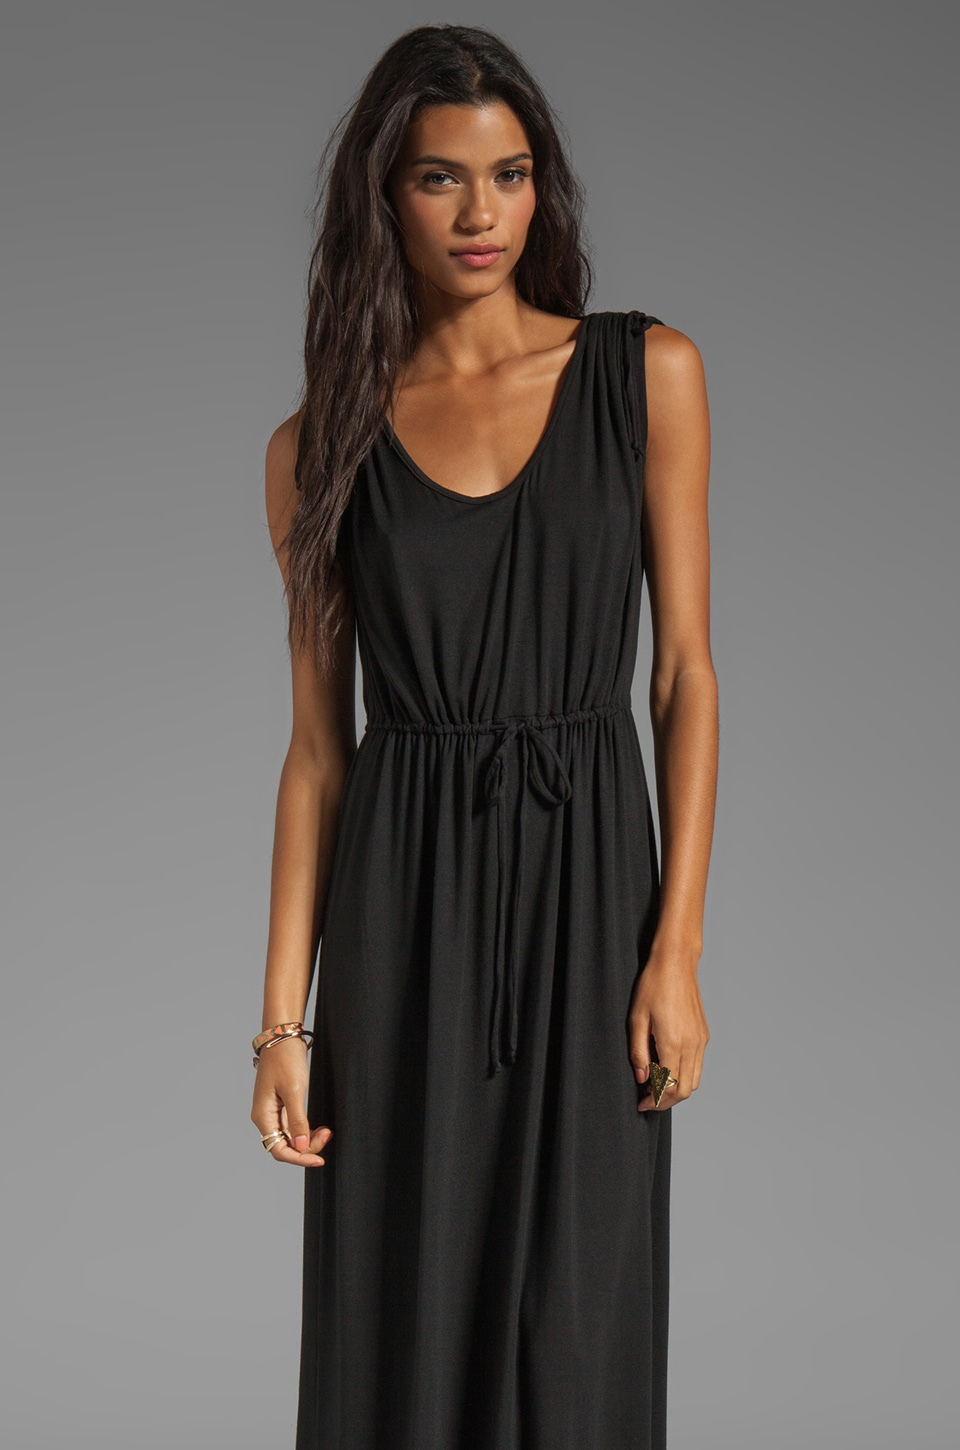 Rachel Pally Baker Dress in Black